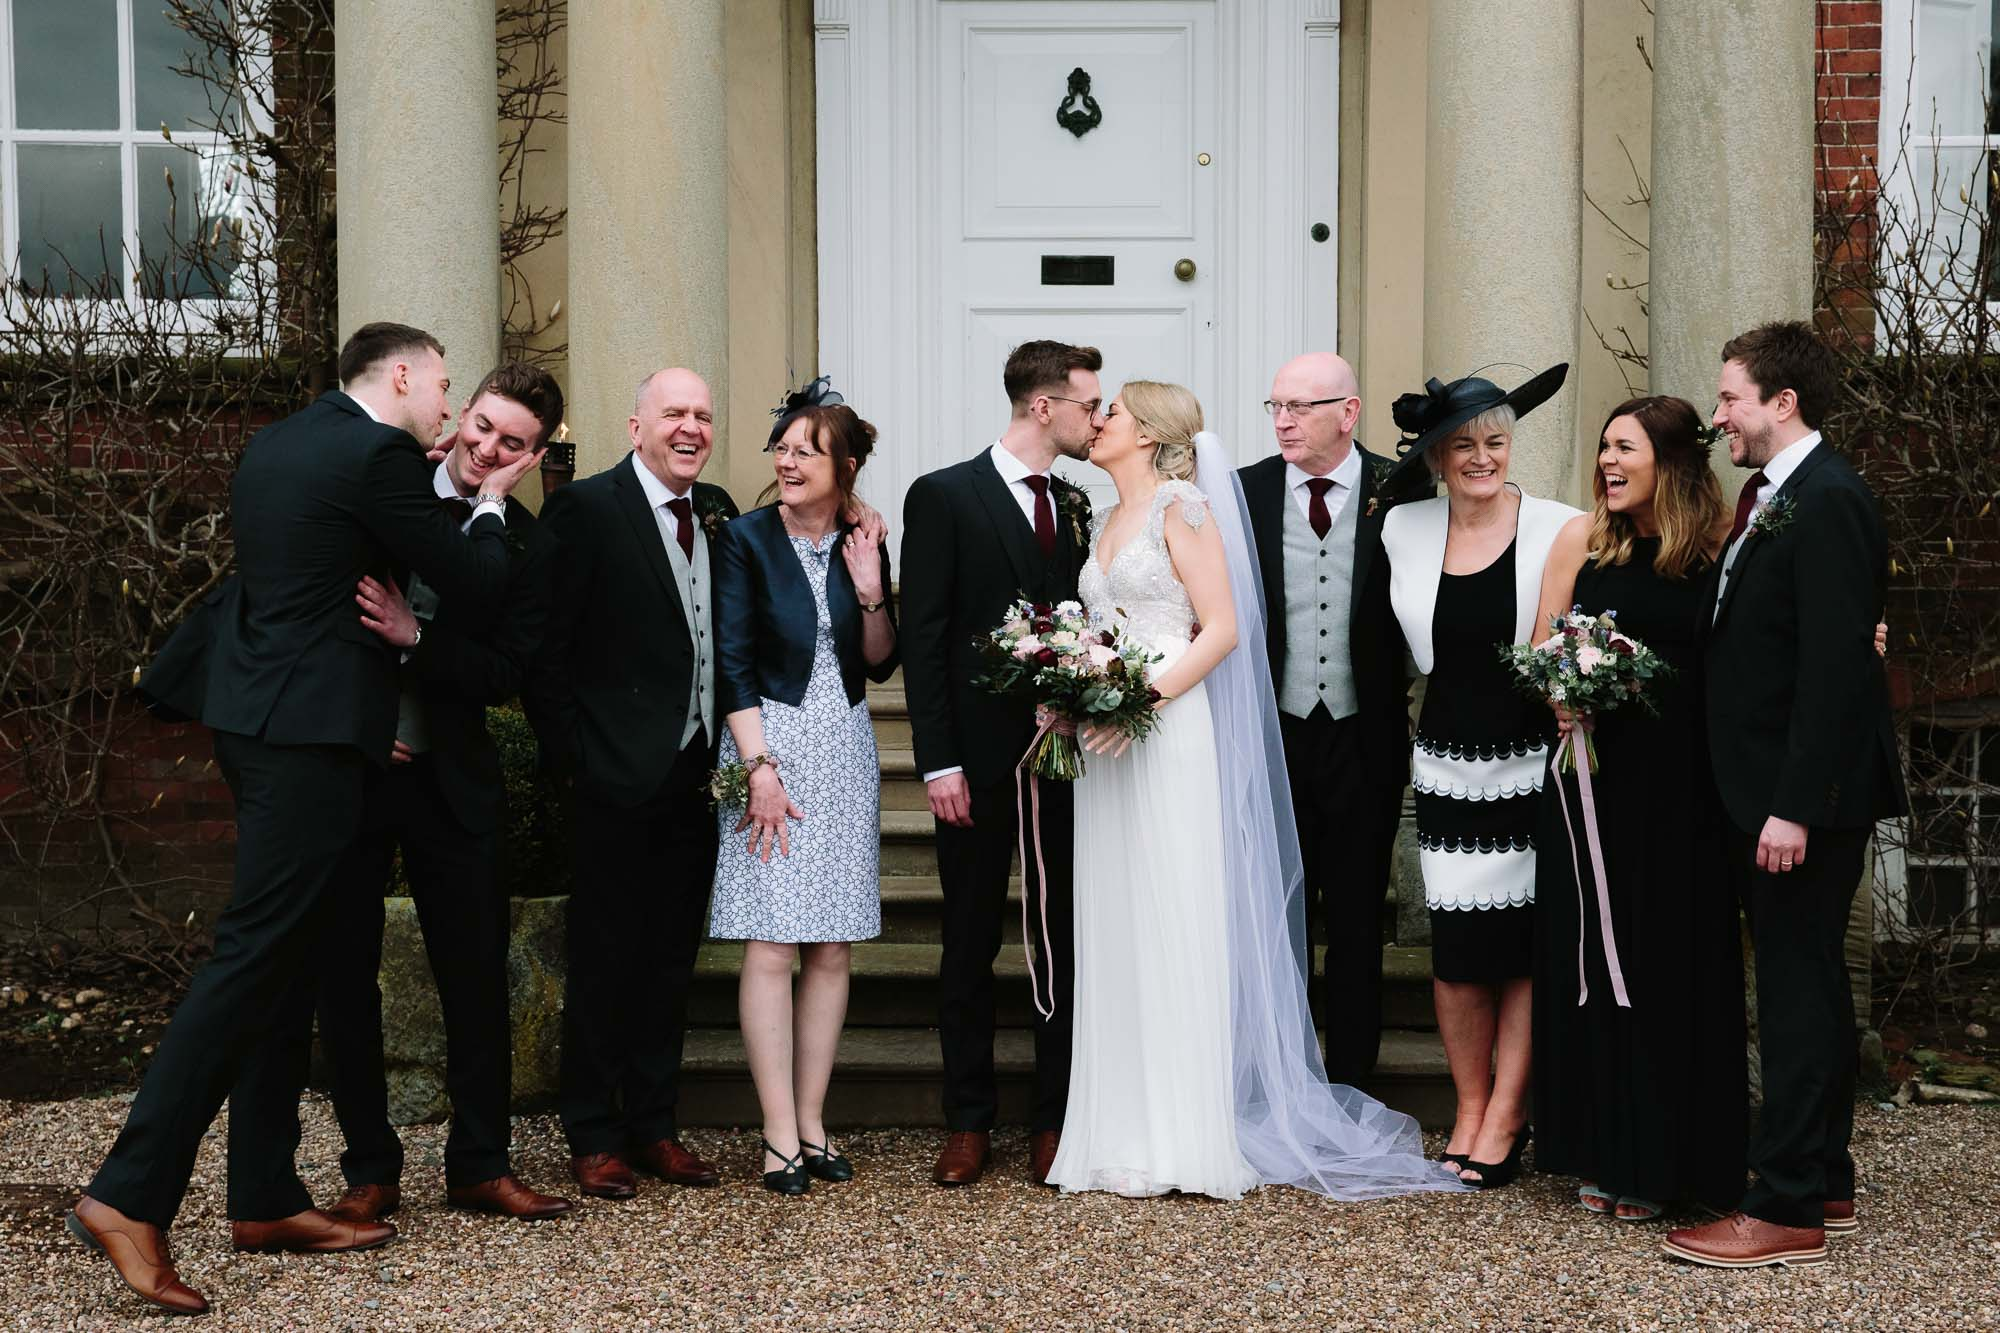 wedding family group shots | https://philippajamesphotography.com › oxford-wedding-photography-group-shots